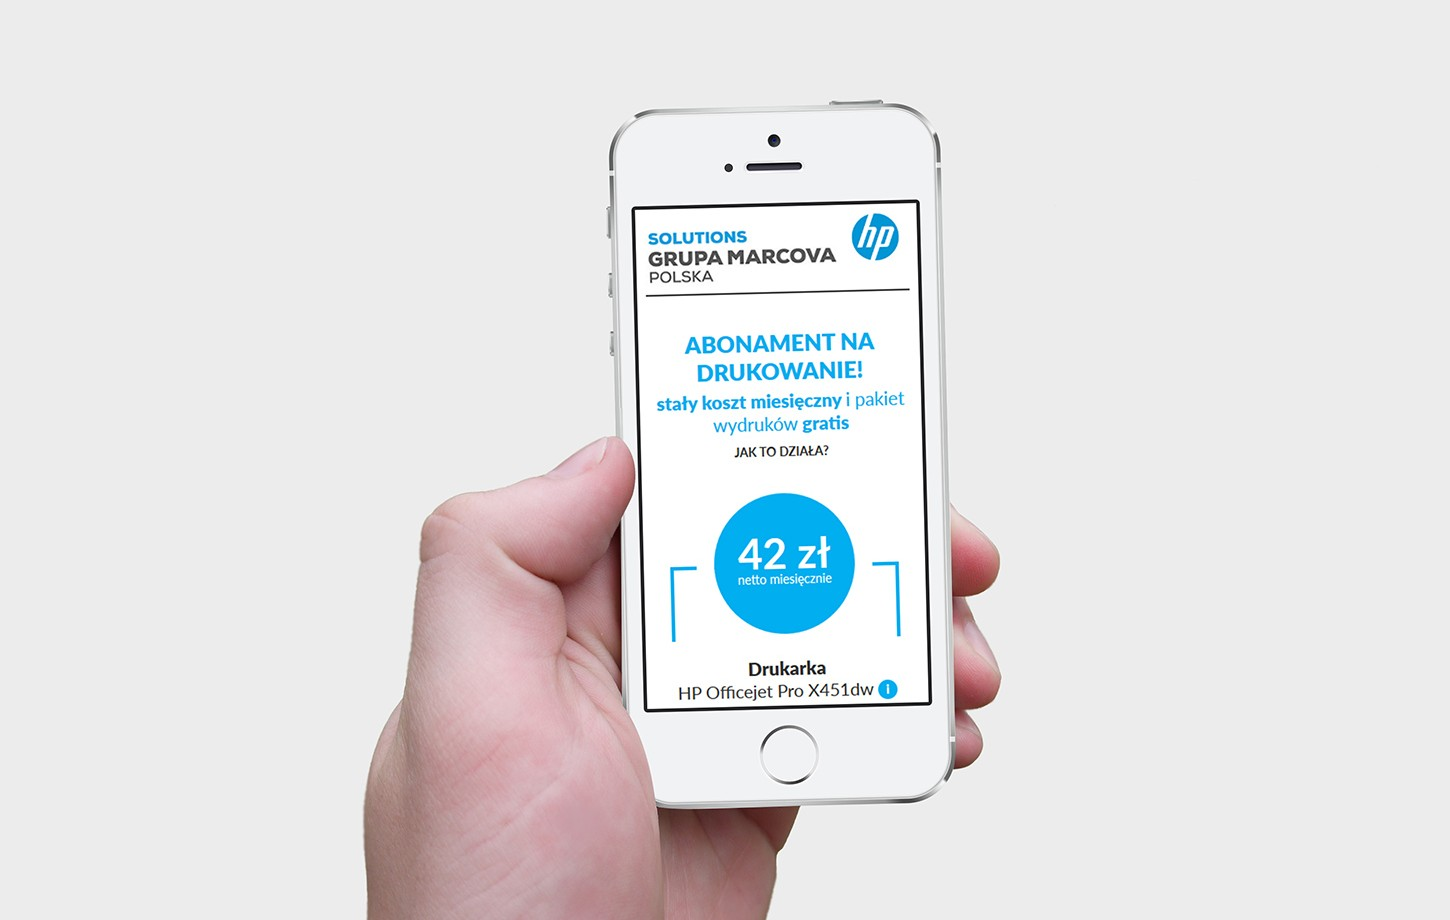 HP - Subscription to print